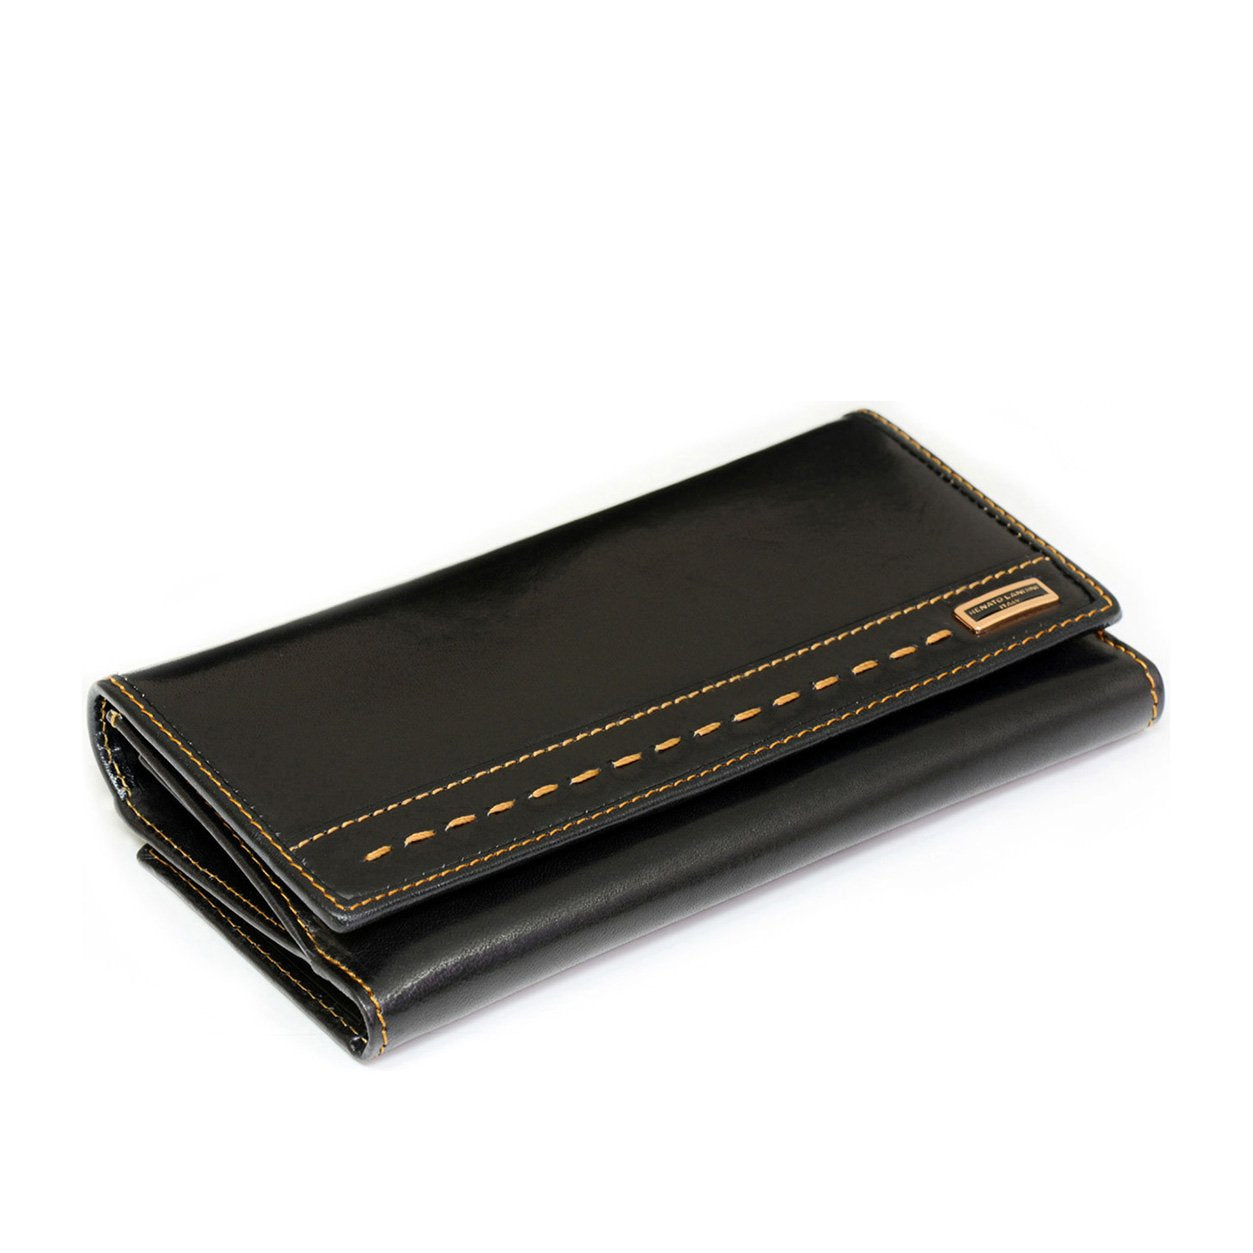 RENATO LANDINI Lady's Wallet/ Arrow